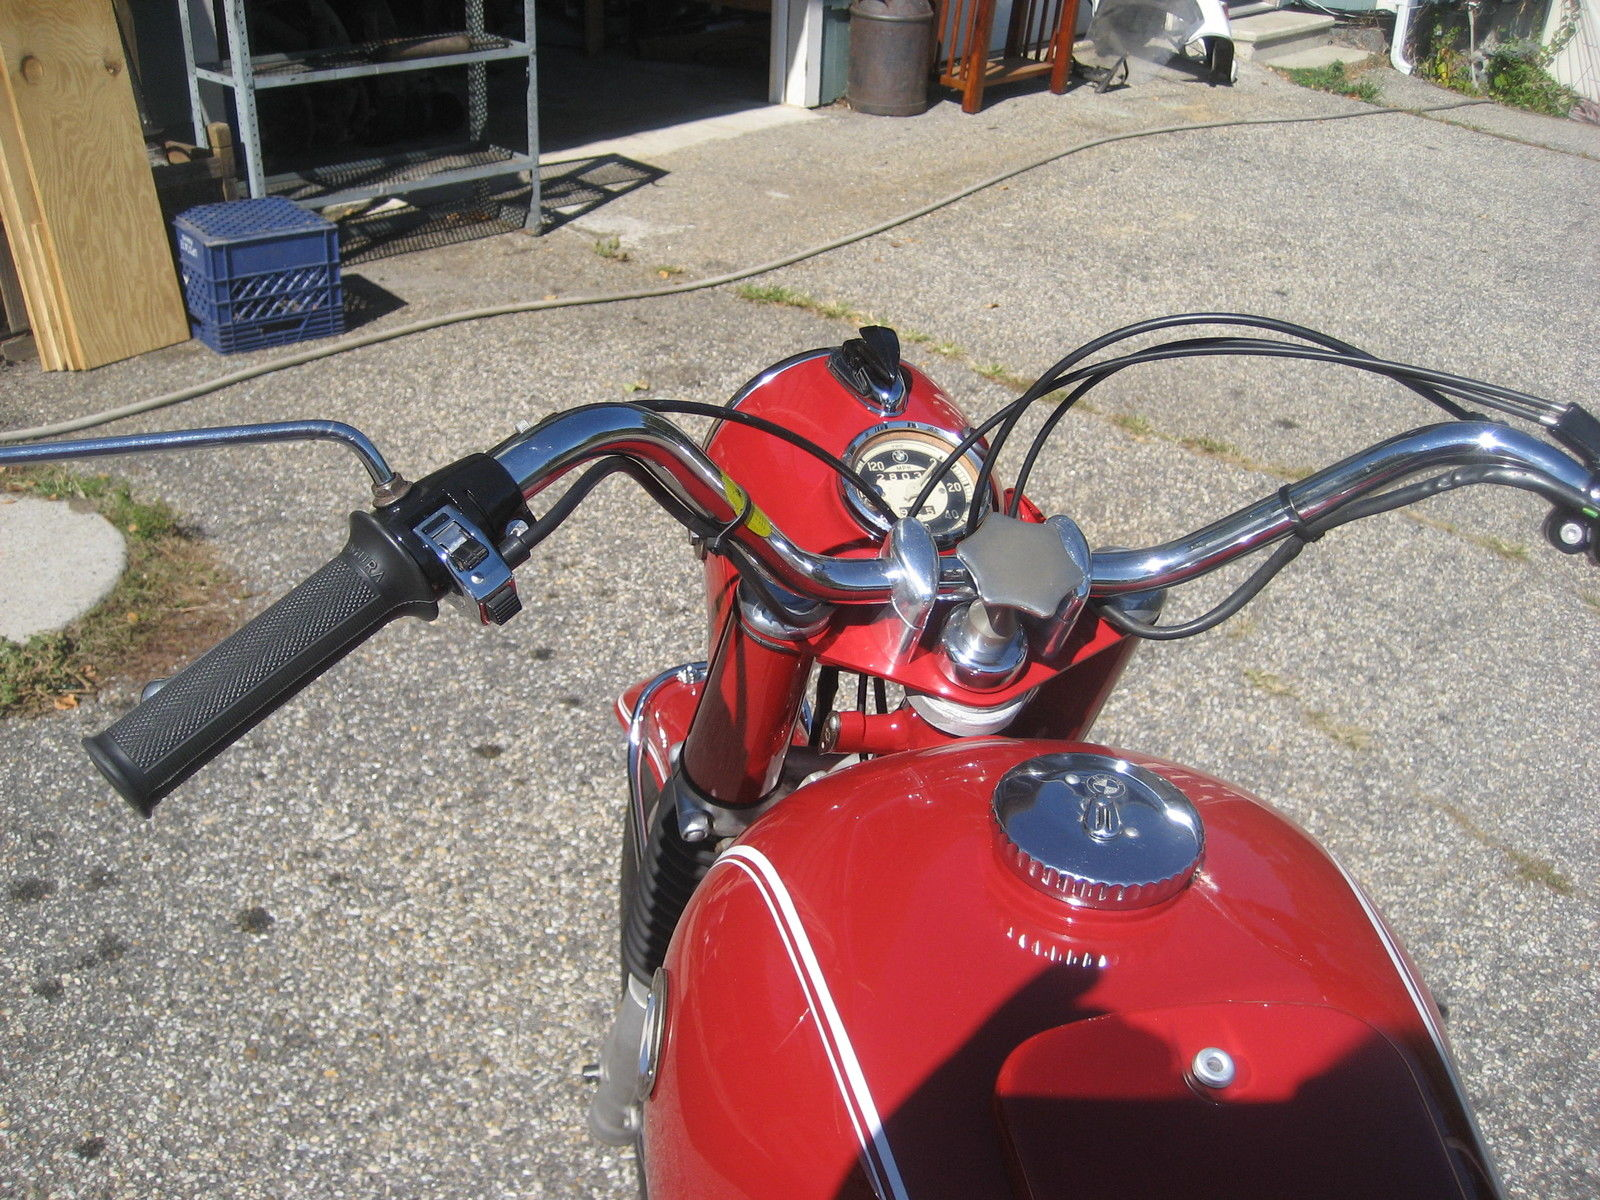 BMW R60 - 1969 - Handlebars, Cables, Mirrors and Steering Damper.